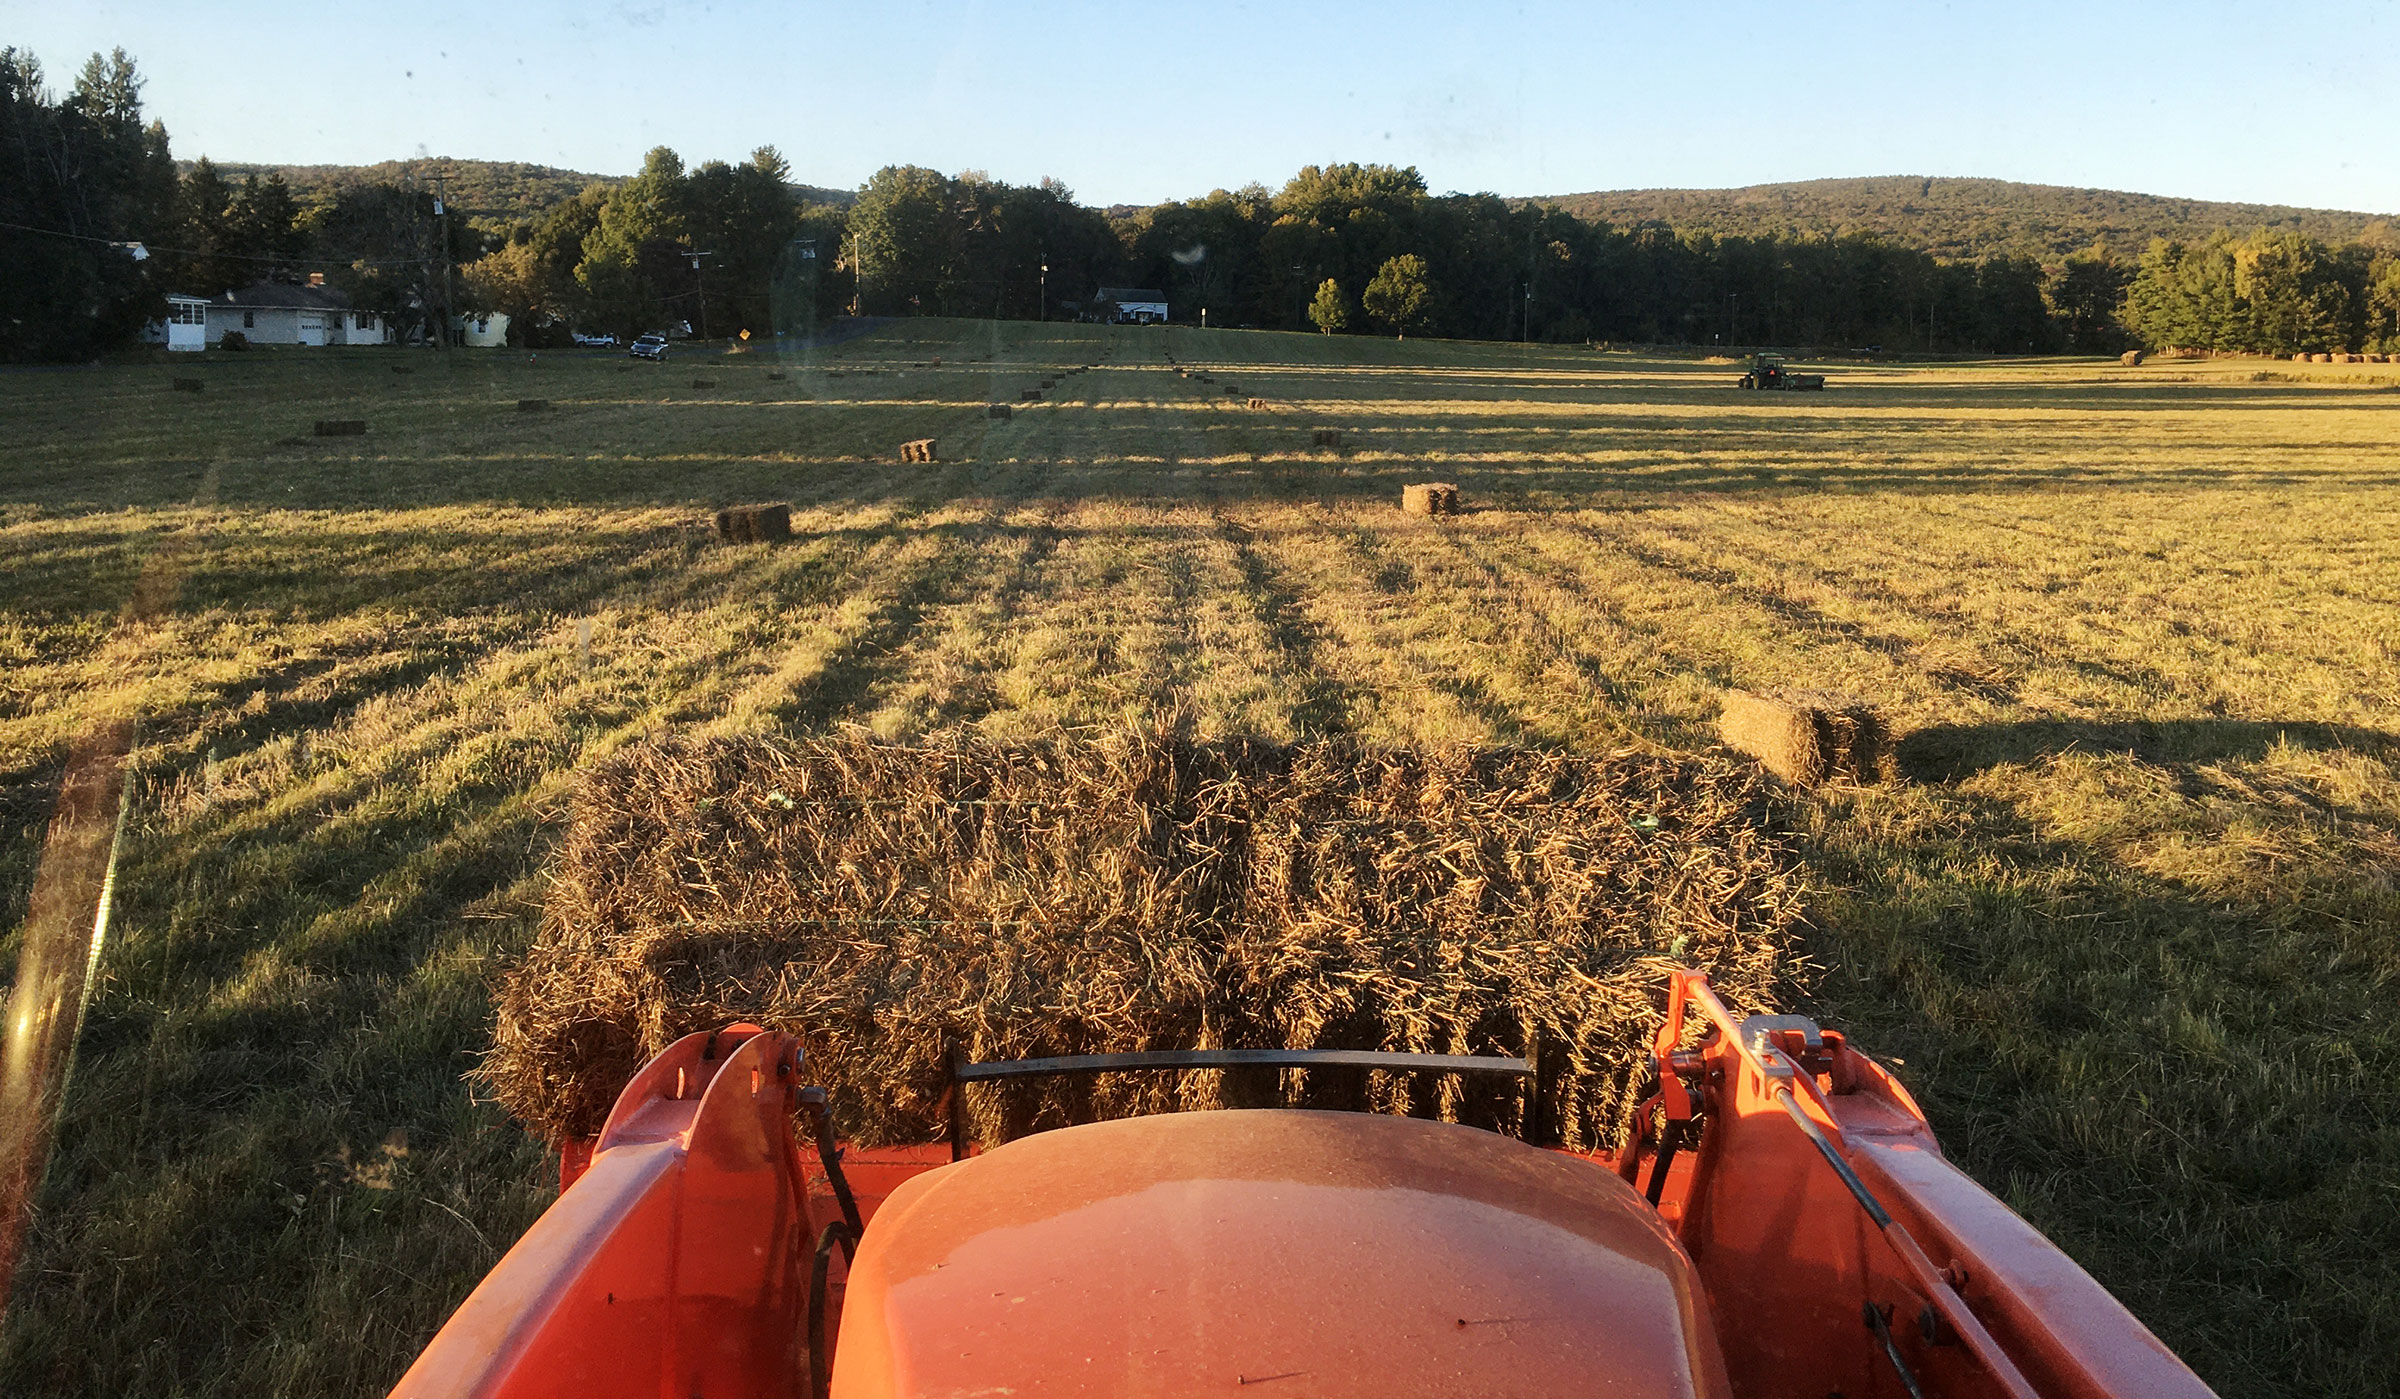 A tractor loads hay in September 2020 at Musante Farm, on a field cut later in the season to allow birds to fledge.